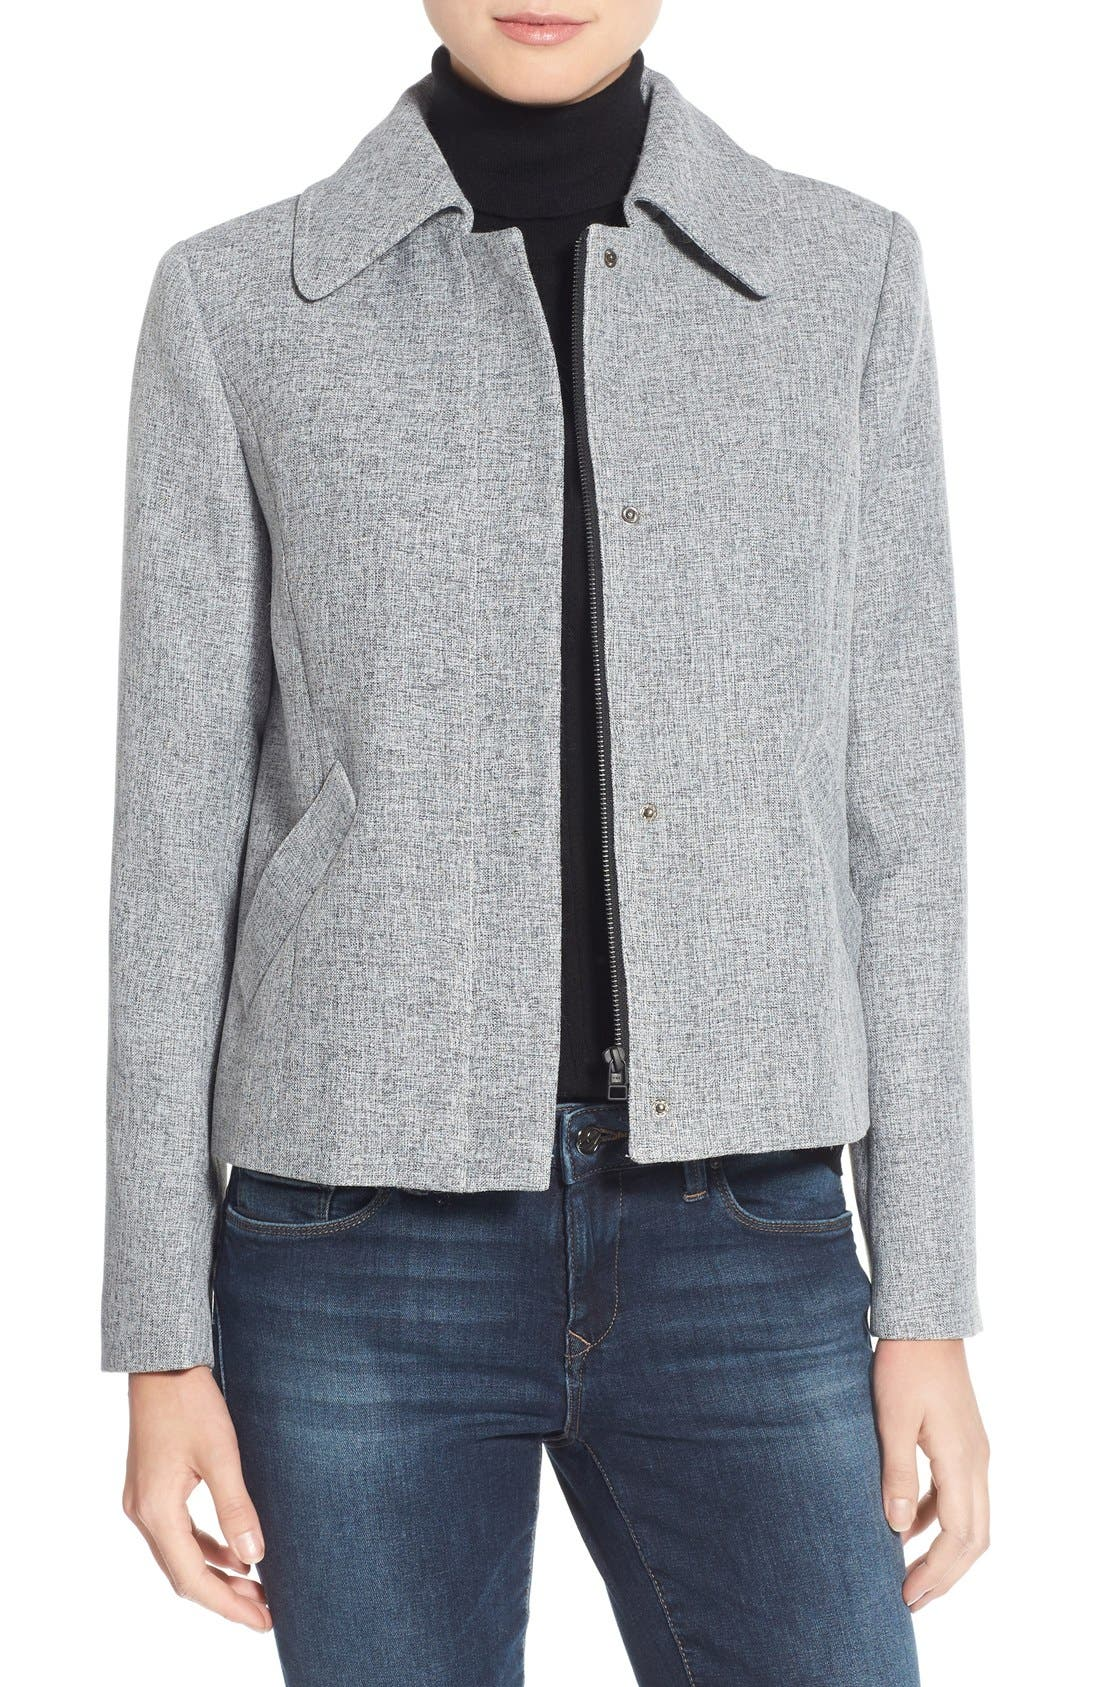 Alternate Image 1 Selected - Halogen® Swing Jacket (Petite)